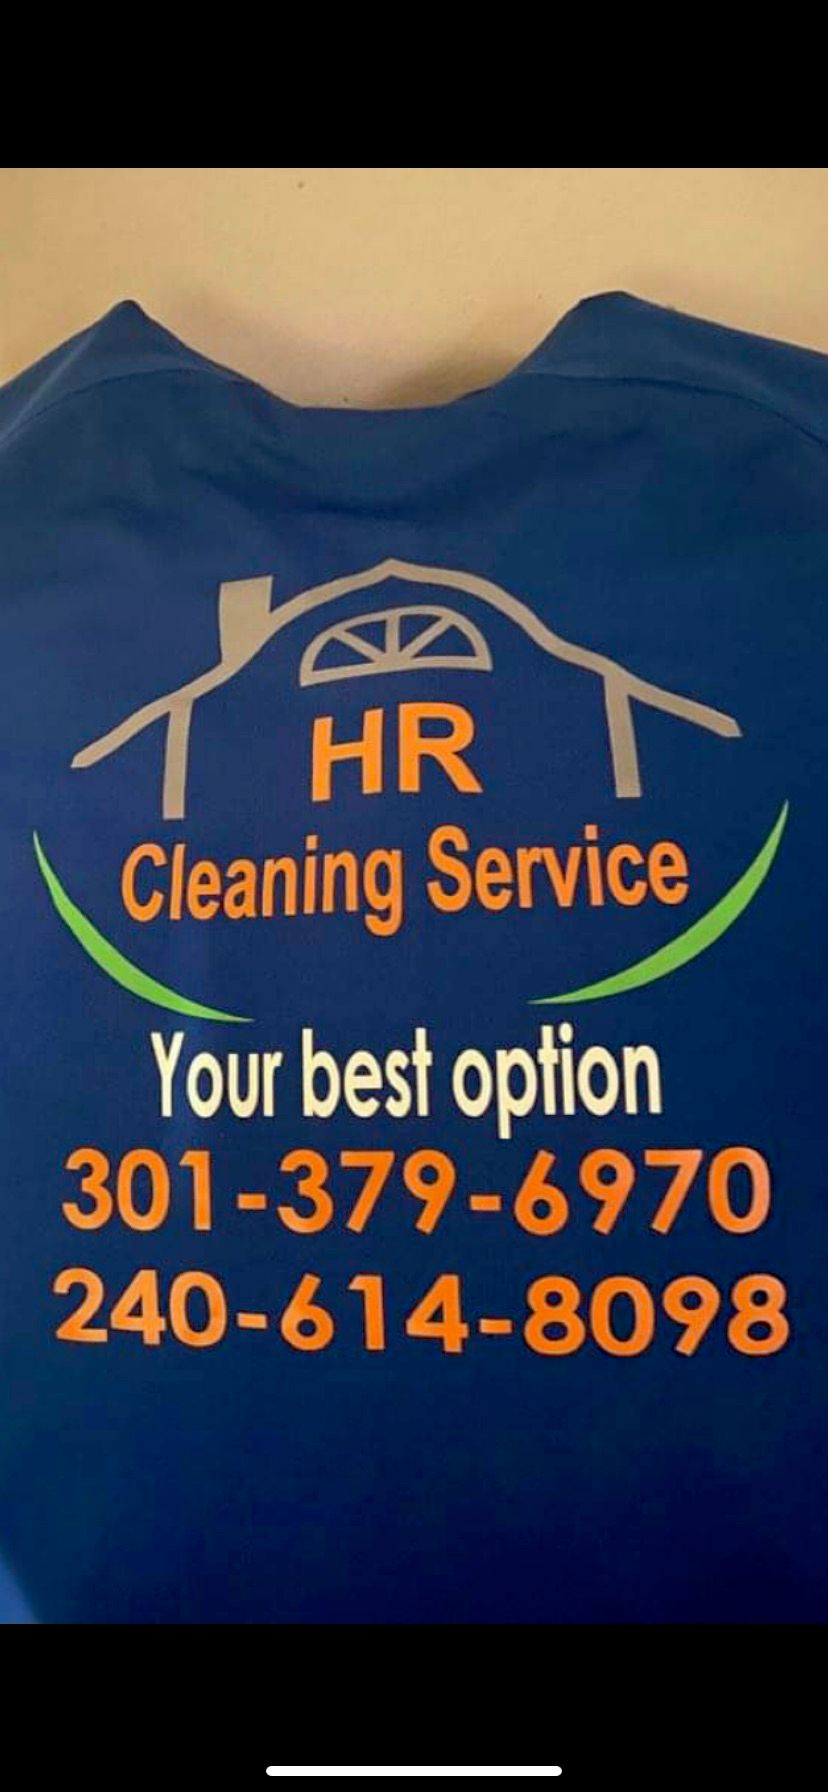 HR cleaning service